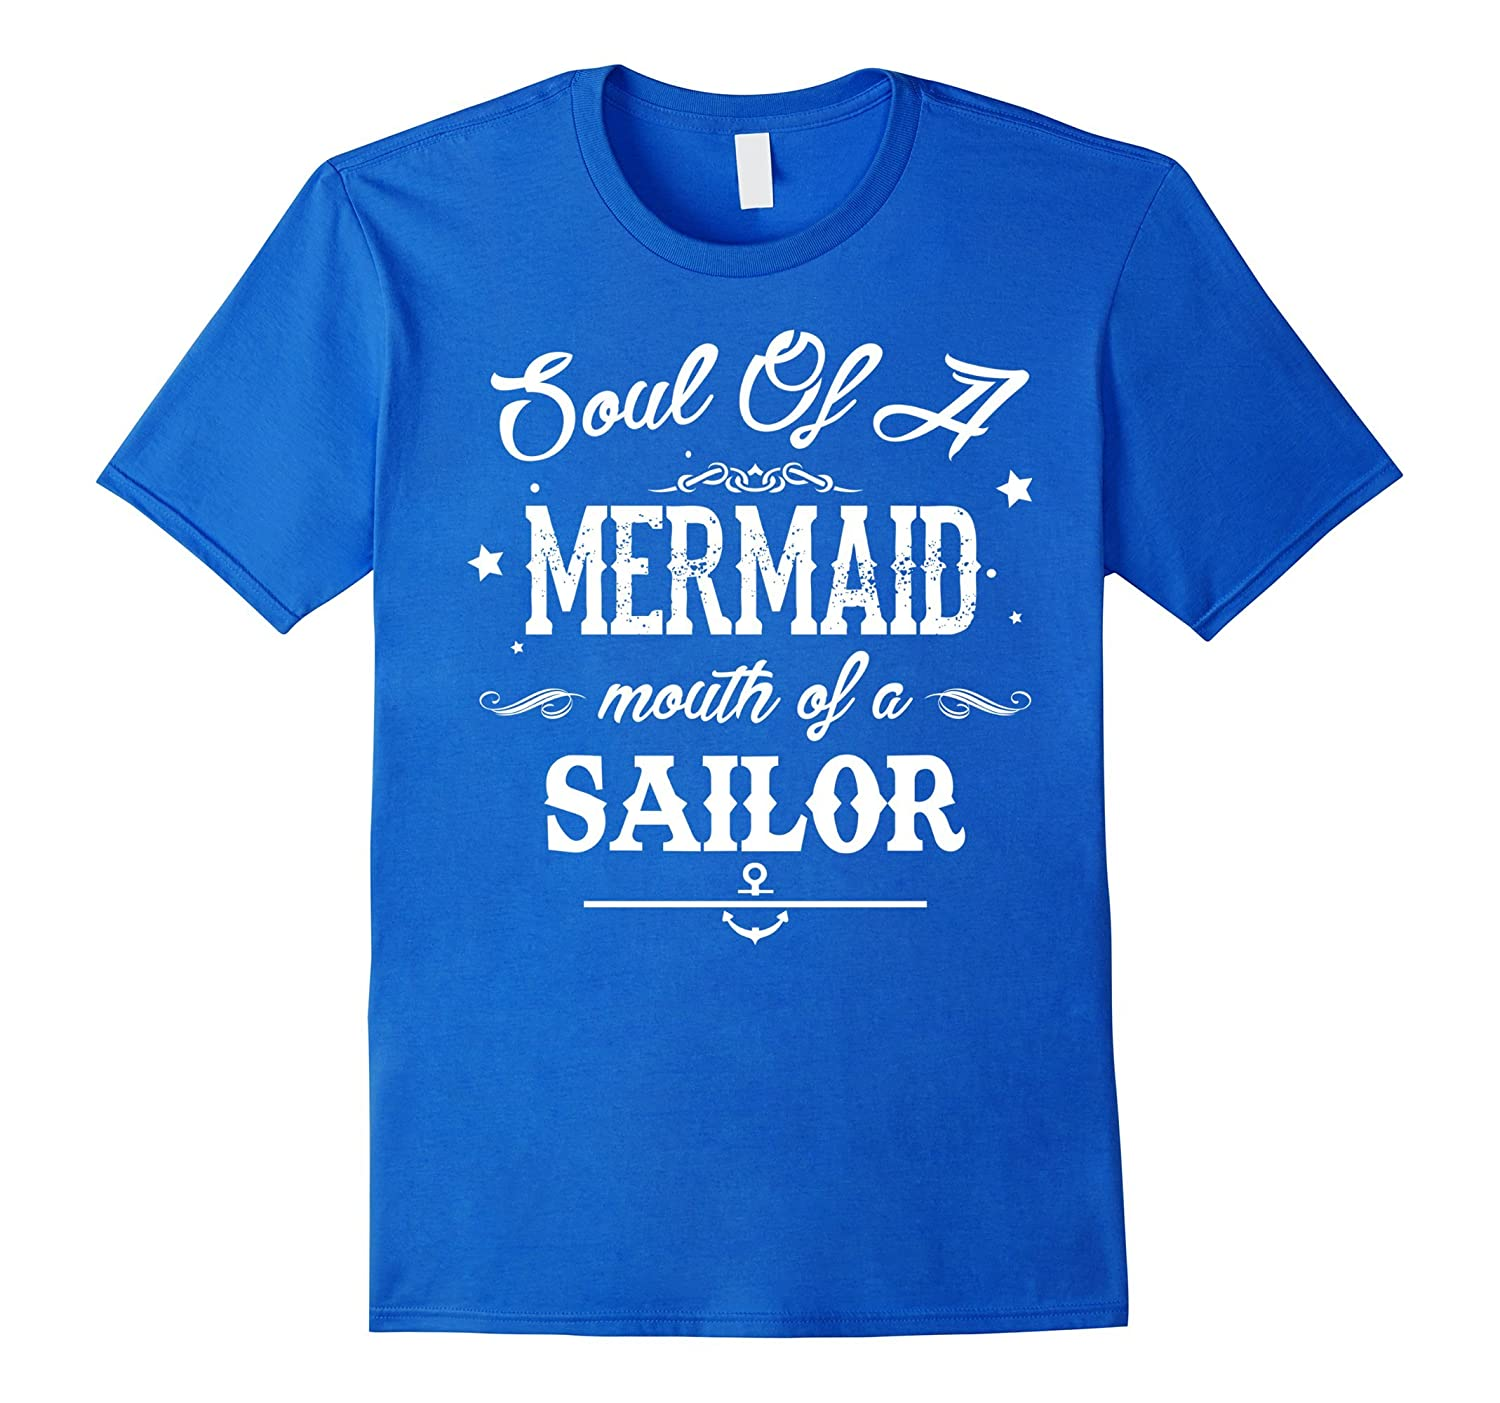 02ade777 Mermaid T-shirt Soul Of A Mermaid Mouth Of A Sailor T-shirt-CL ...